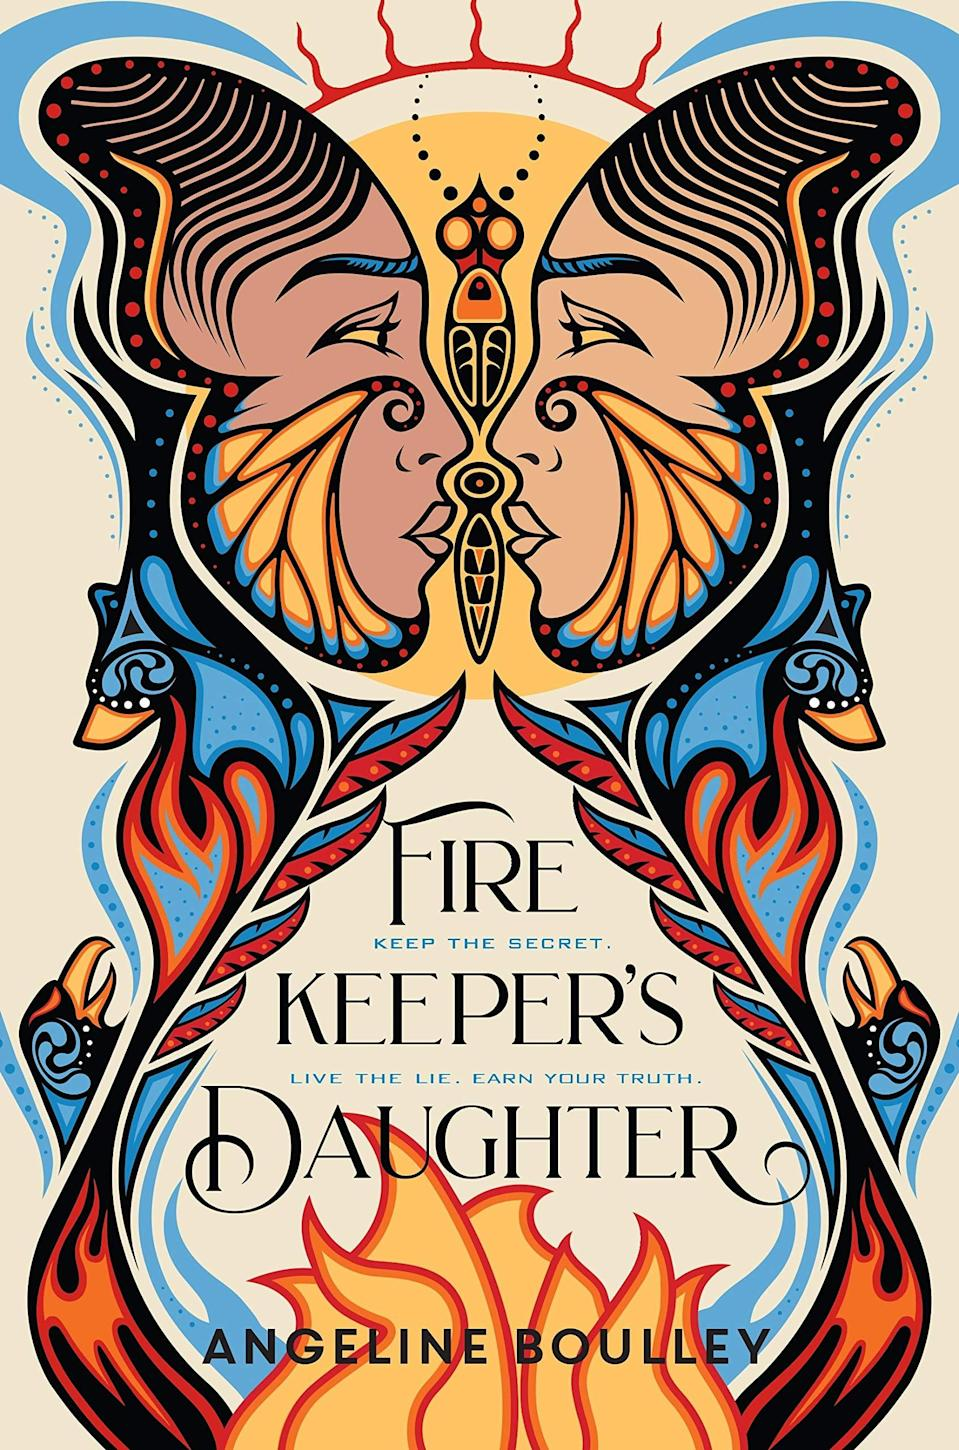 <p>Angeline Boulley's <span><strong>Firekeeper's Daughter</strong></span> is sure to be on one of the year's best YA novels. This intense thriller finds an 18-year-old Native teen, Daunis Fontaine, drawn into the FBI's investigation into a dangerous drug that's plaguing the Ojibwe reservation. But the deeper Daunis goes undercover, the more she begins to wonder whether or not the FBI has any interest in protecting her community at all. </p> <p><em>Out March 16</em></p>